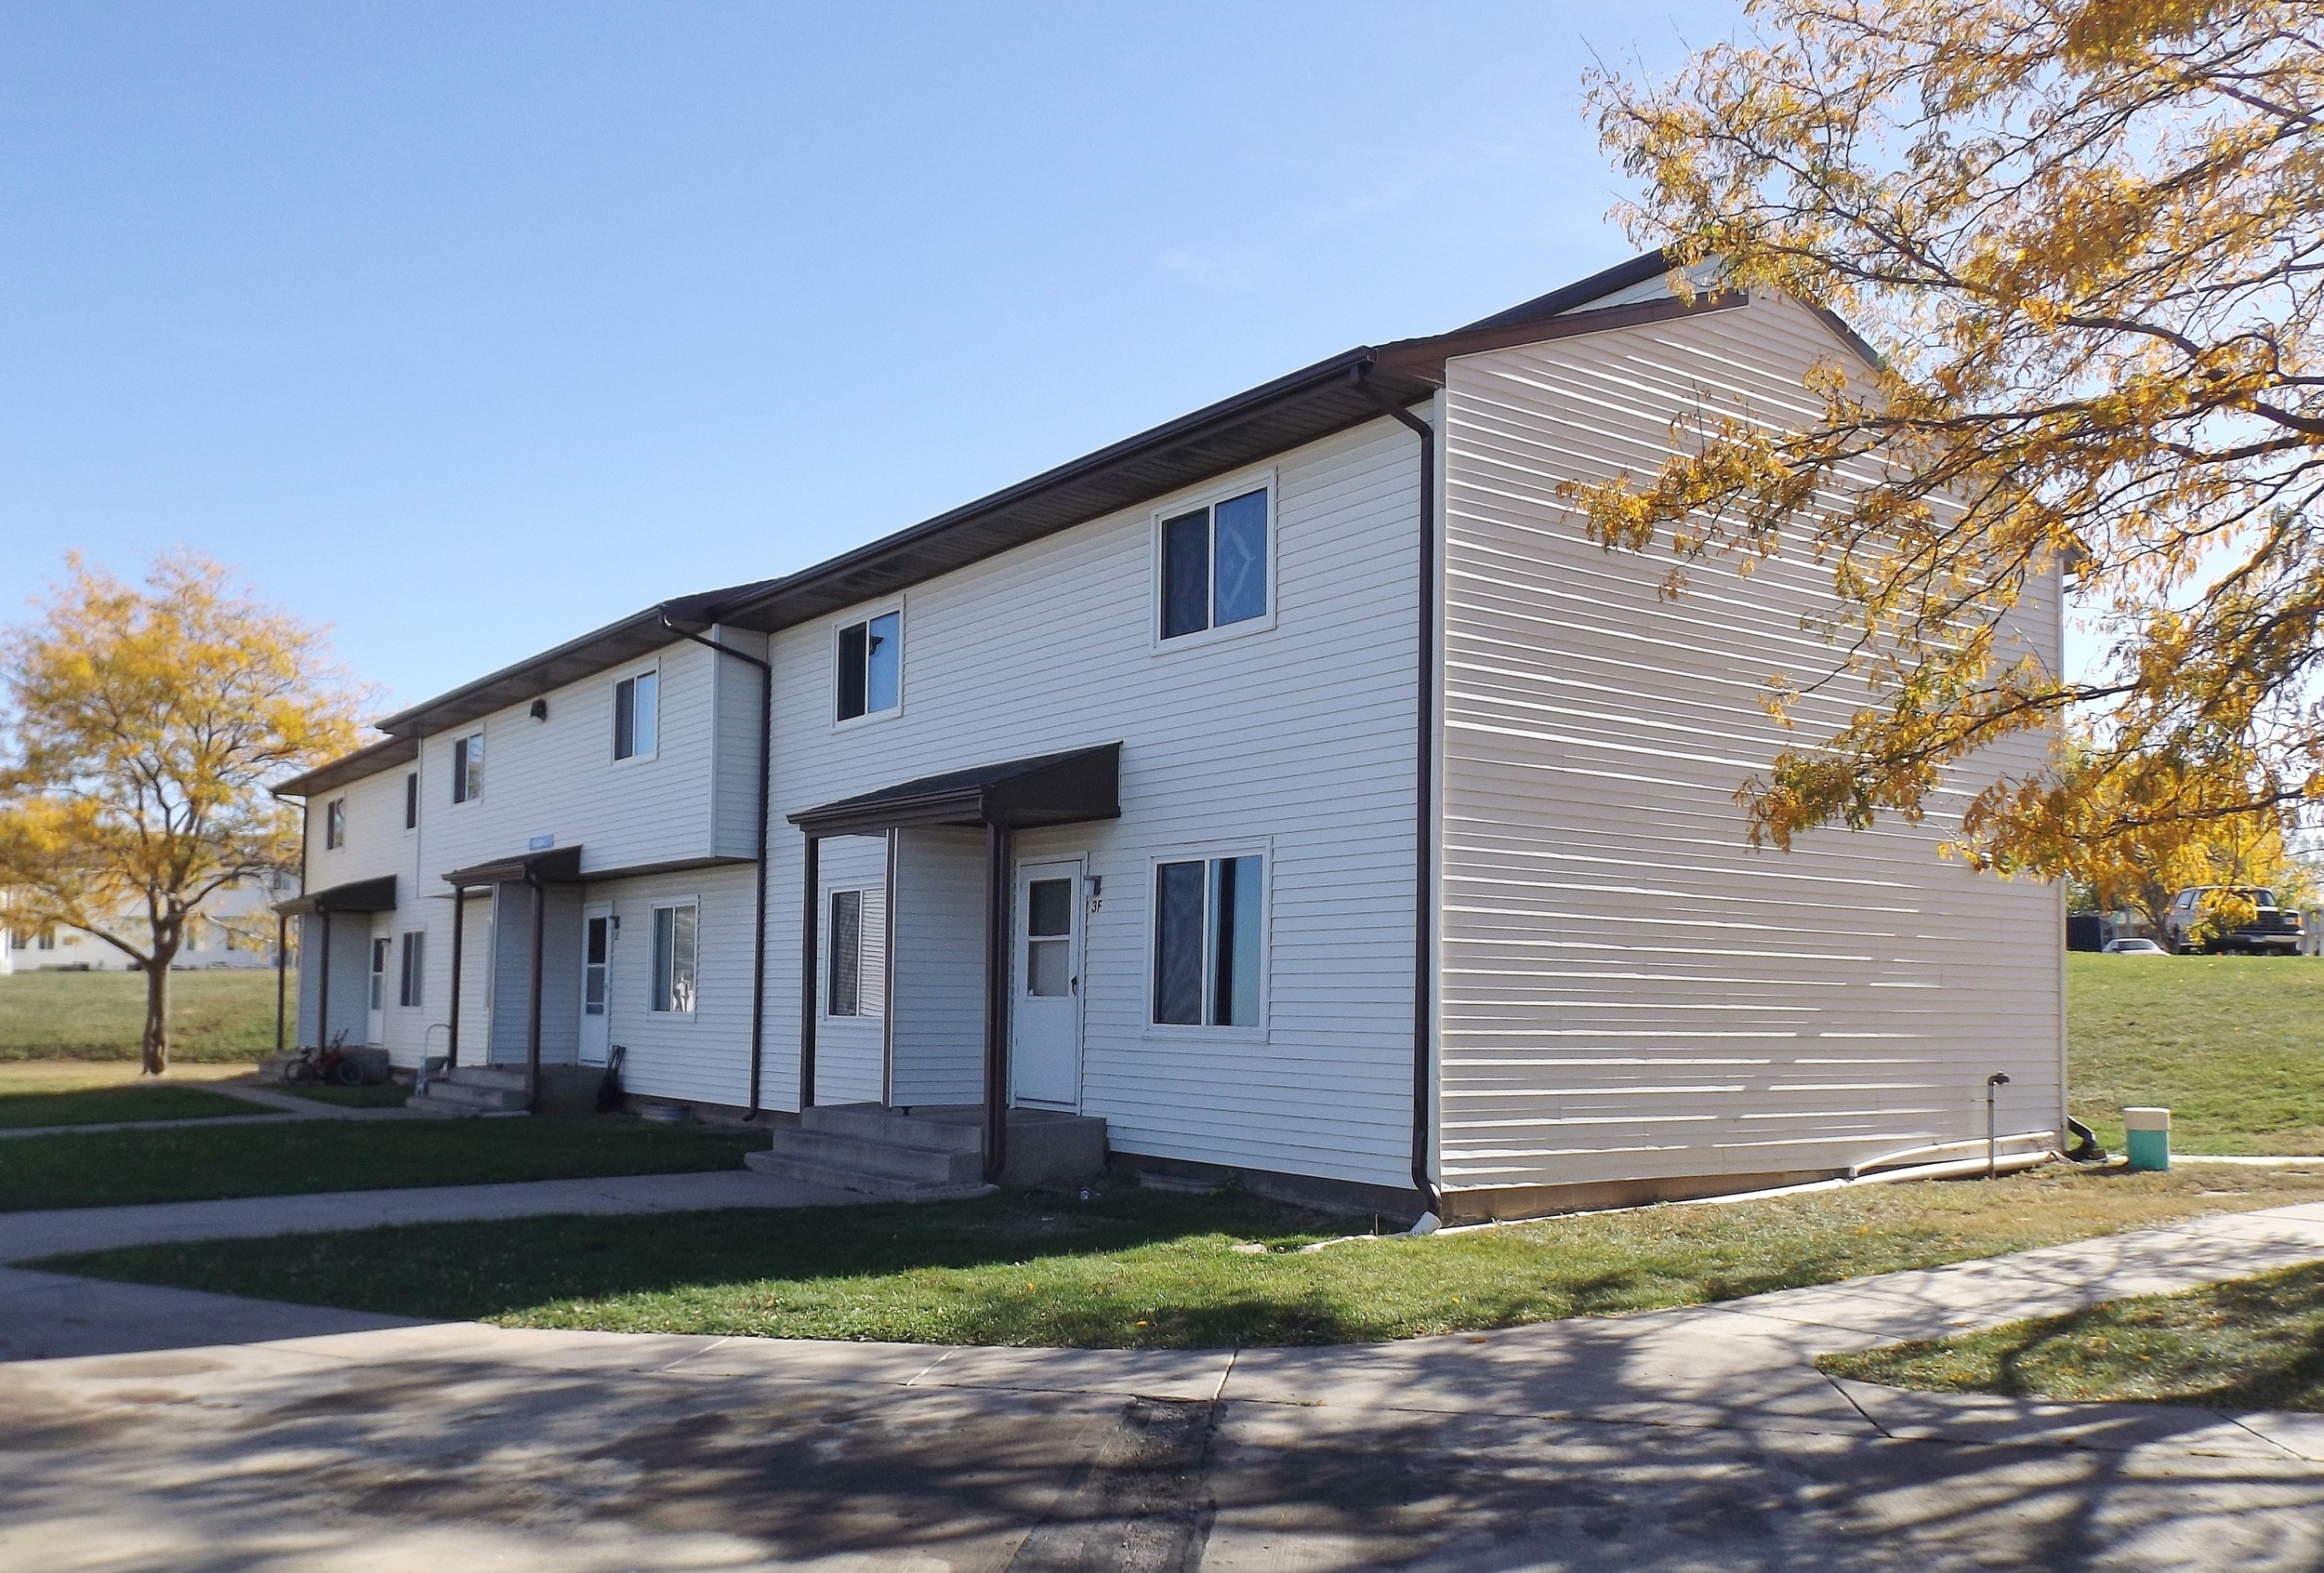 Pleasant Hill Village Apartment Rentals in Rapid City, SD - great location